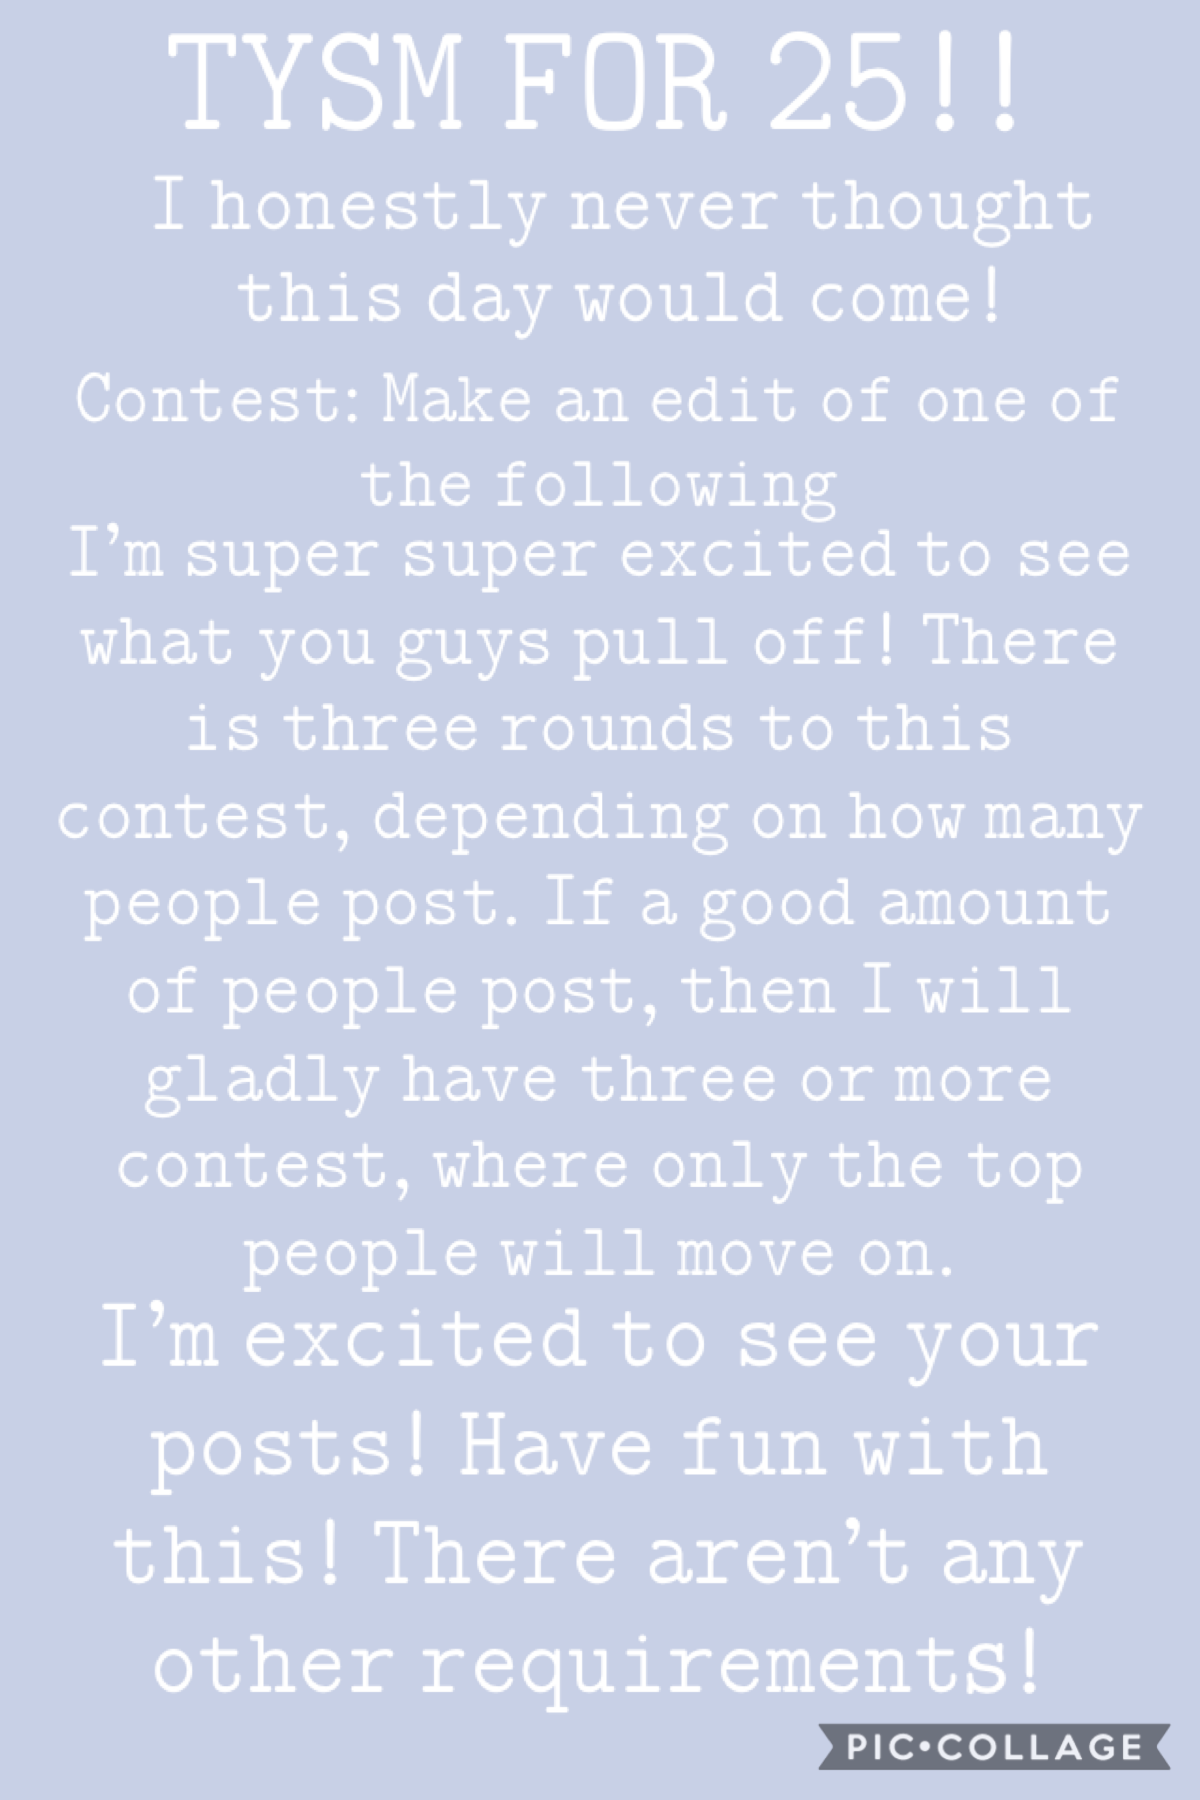 hey guys! although you probably won't see this lol, i'm doing a contest! you just make an edit of anyone in the following post! i'm excited to see what y'all pull off! have fun! 💜